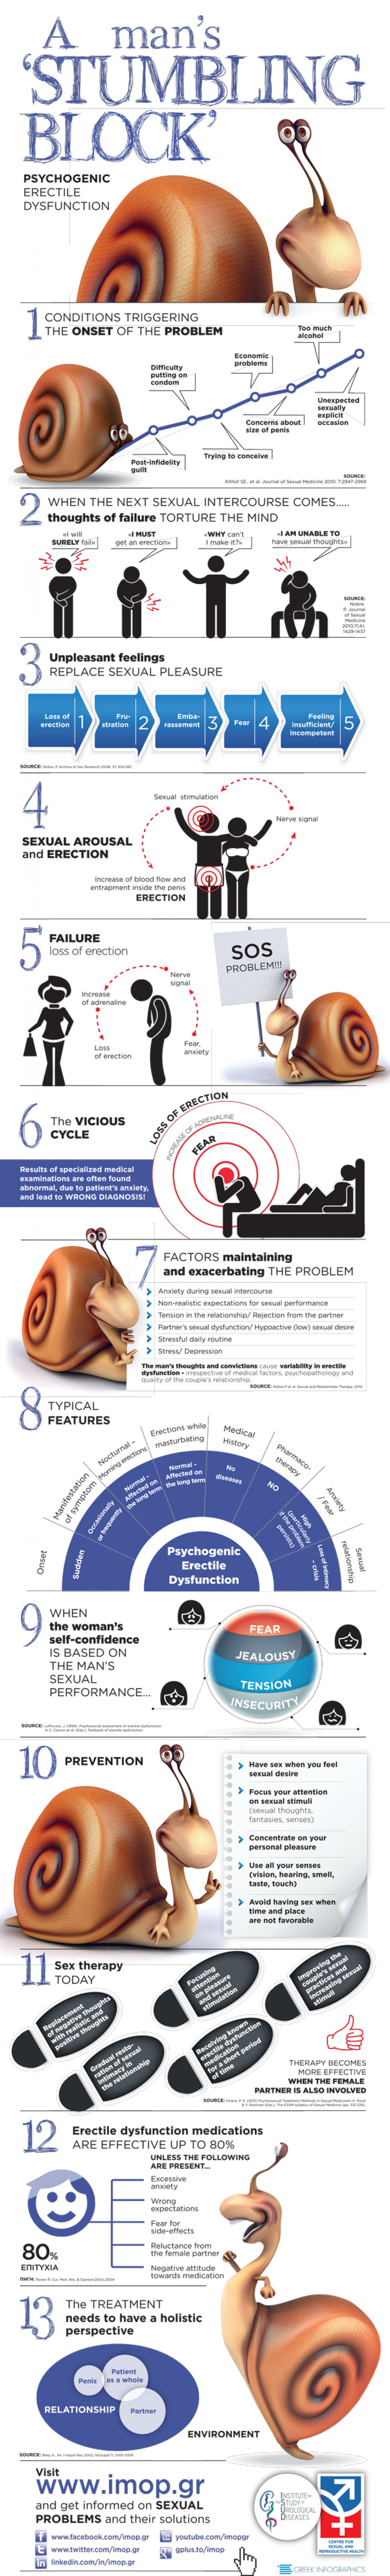 A mans Stumbling Block - Psychigenic Erectile Dysfunction Infographic